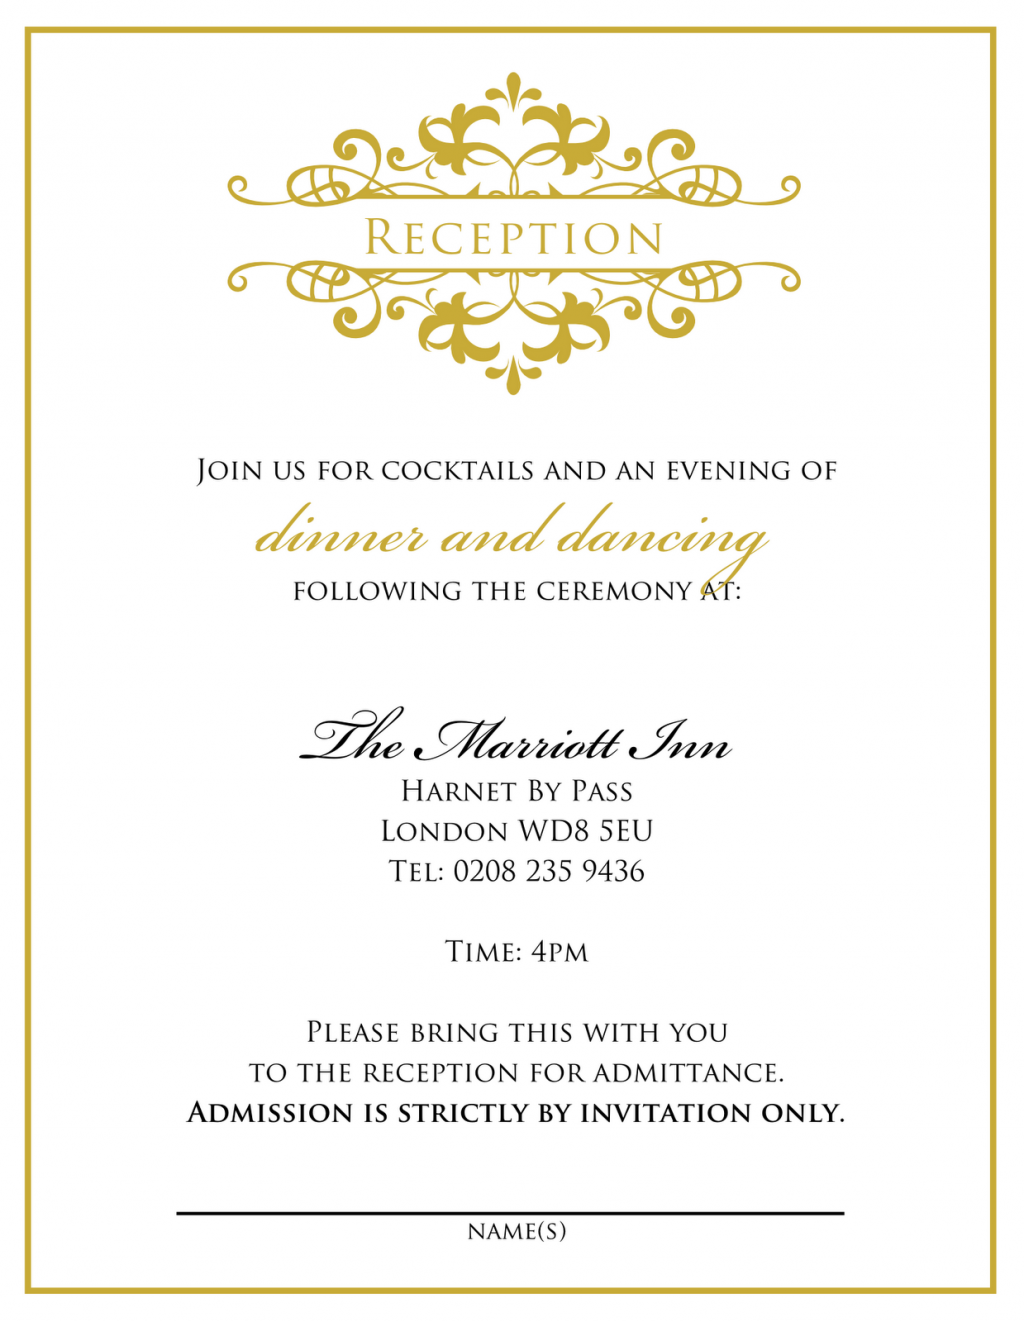 29 Free Printable Wedding Dinner Invitation Text Message in Photoshop by Wedding Dinner Invitation Text Message